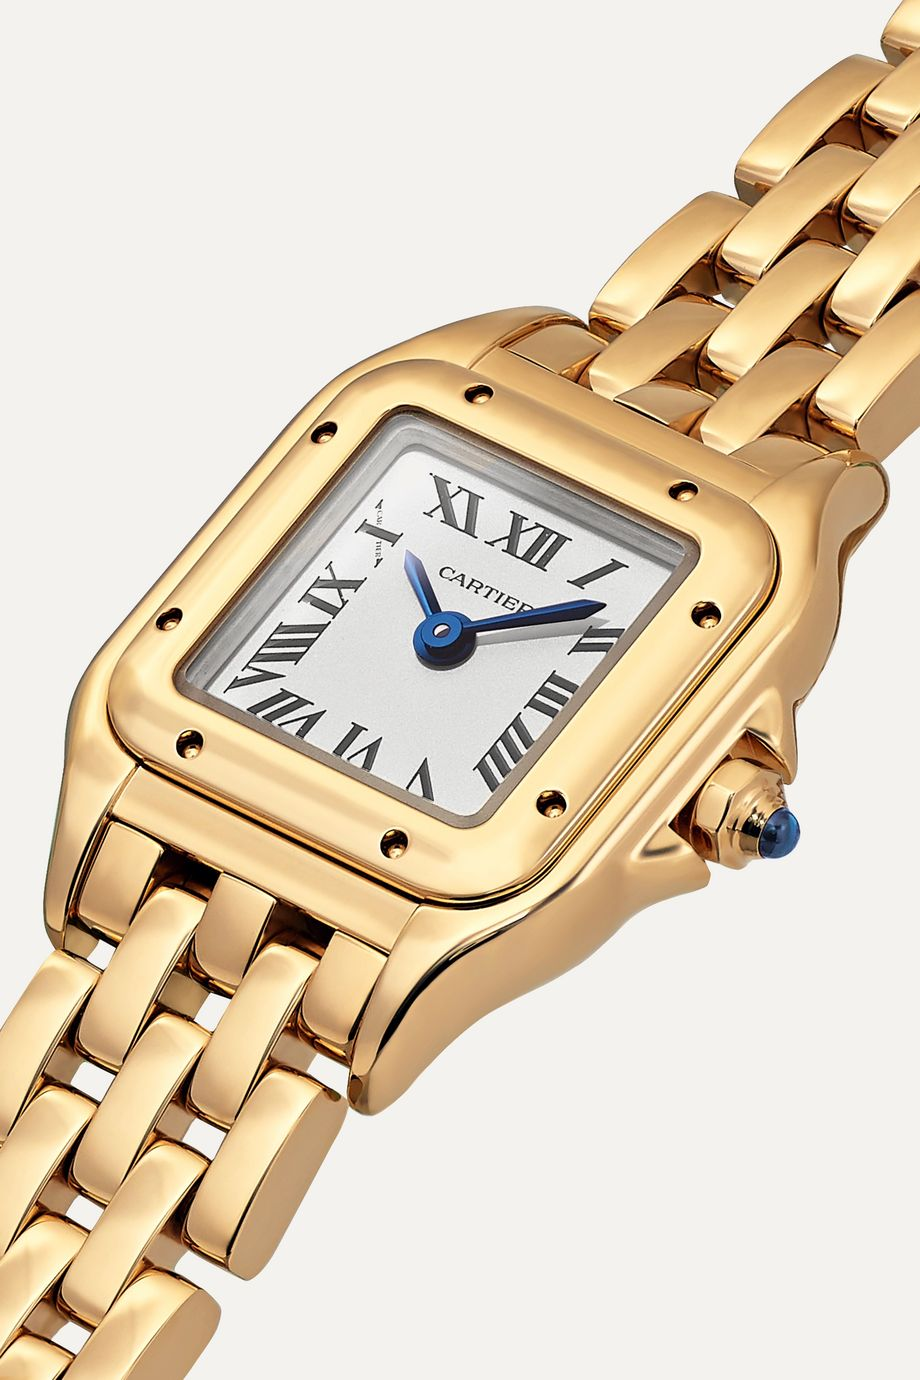 Cartier Panthère de Cartier 20mm small 18-karat gold watch